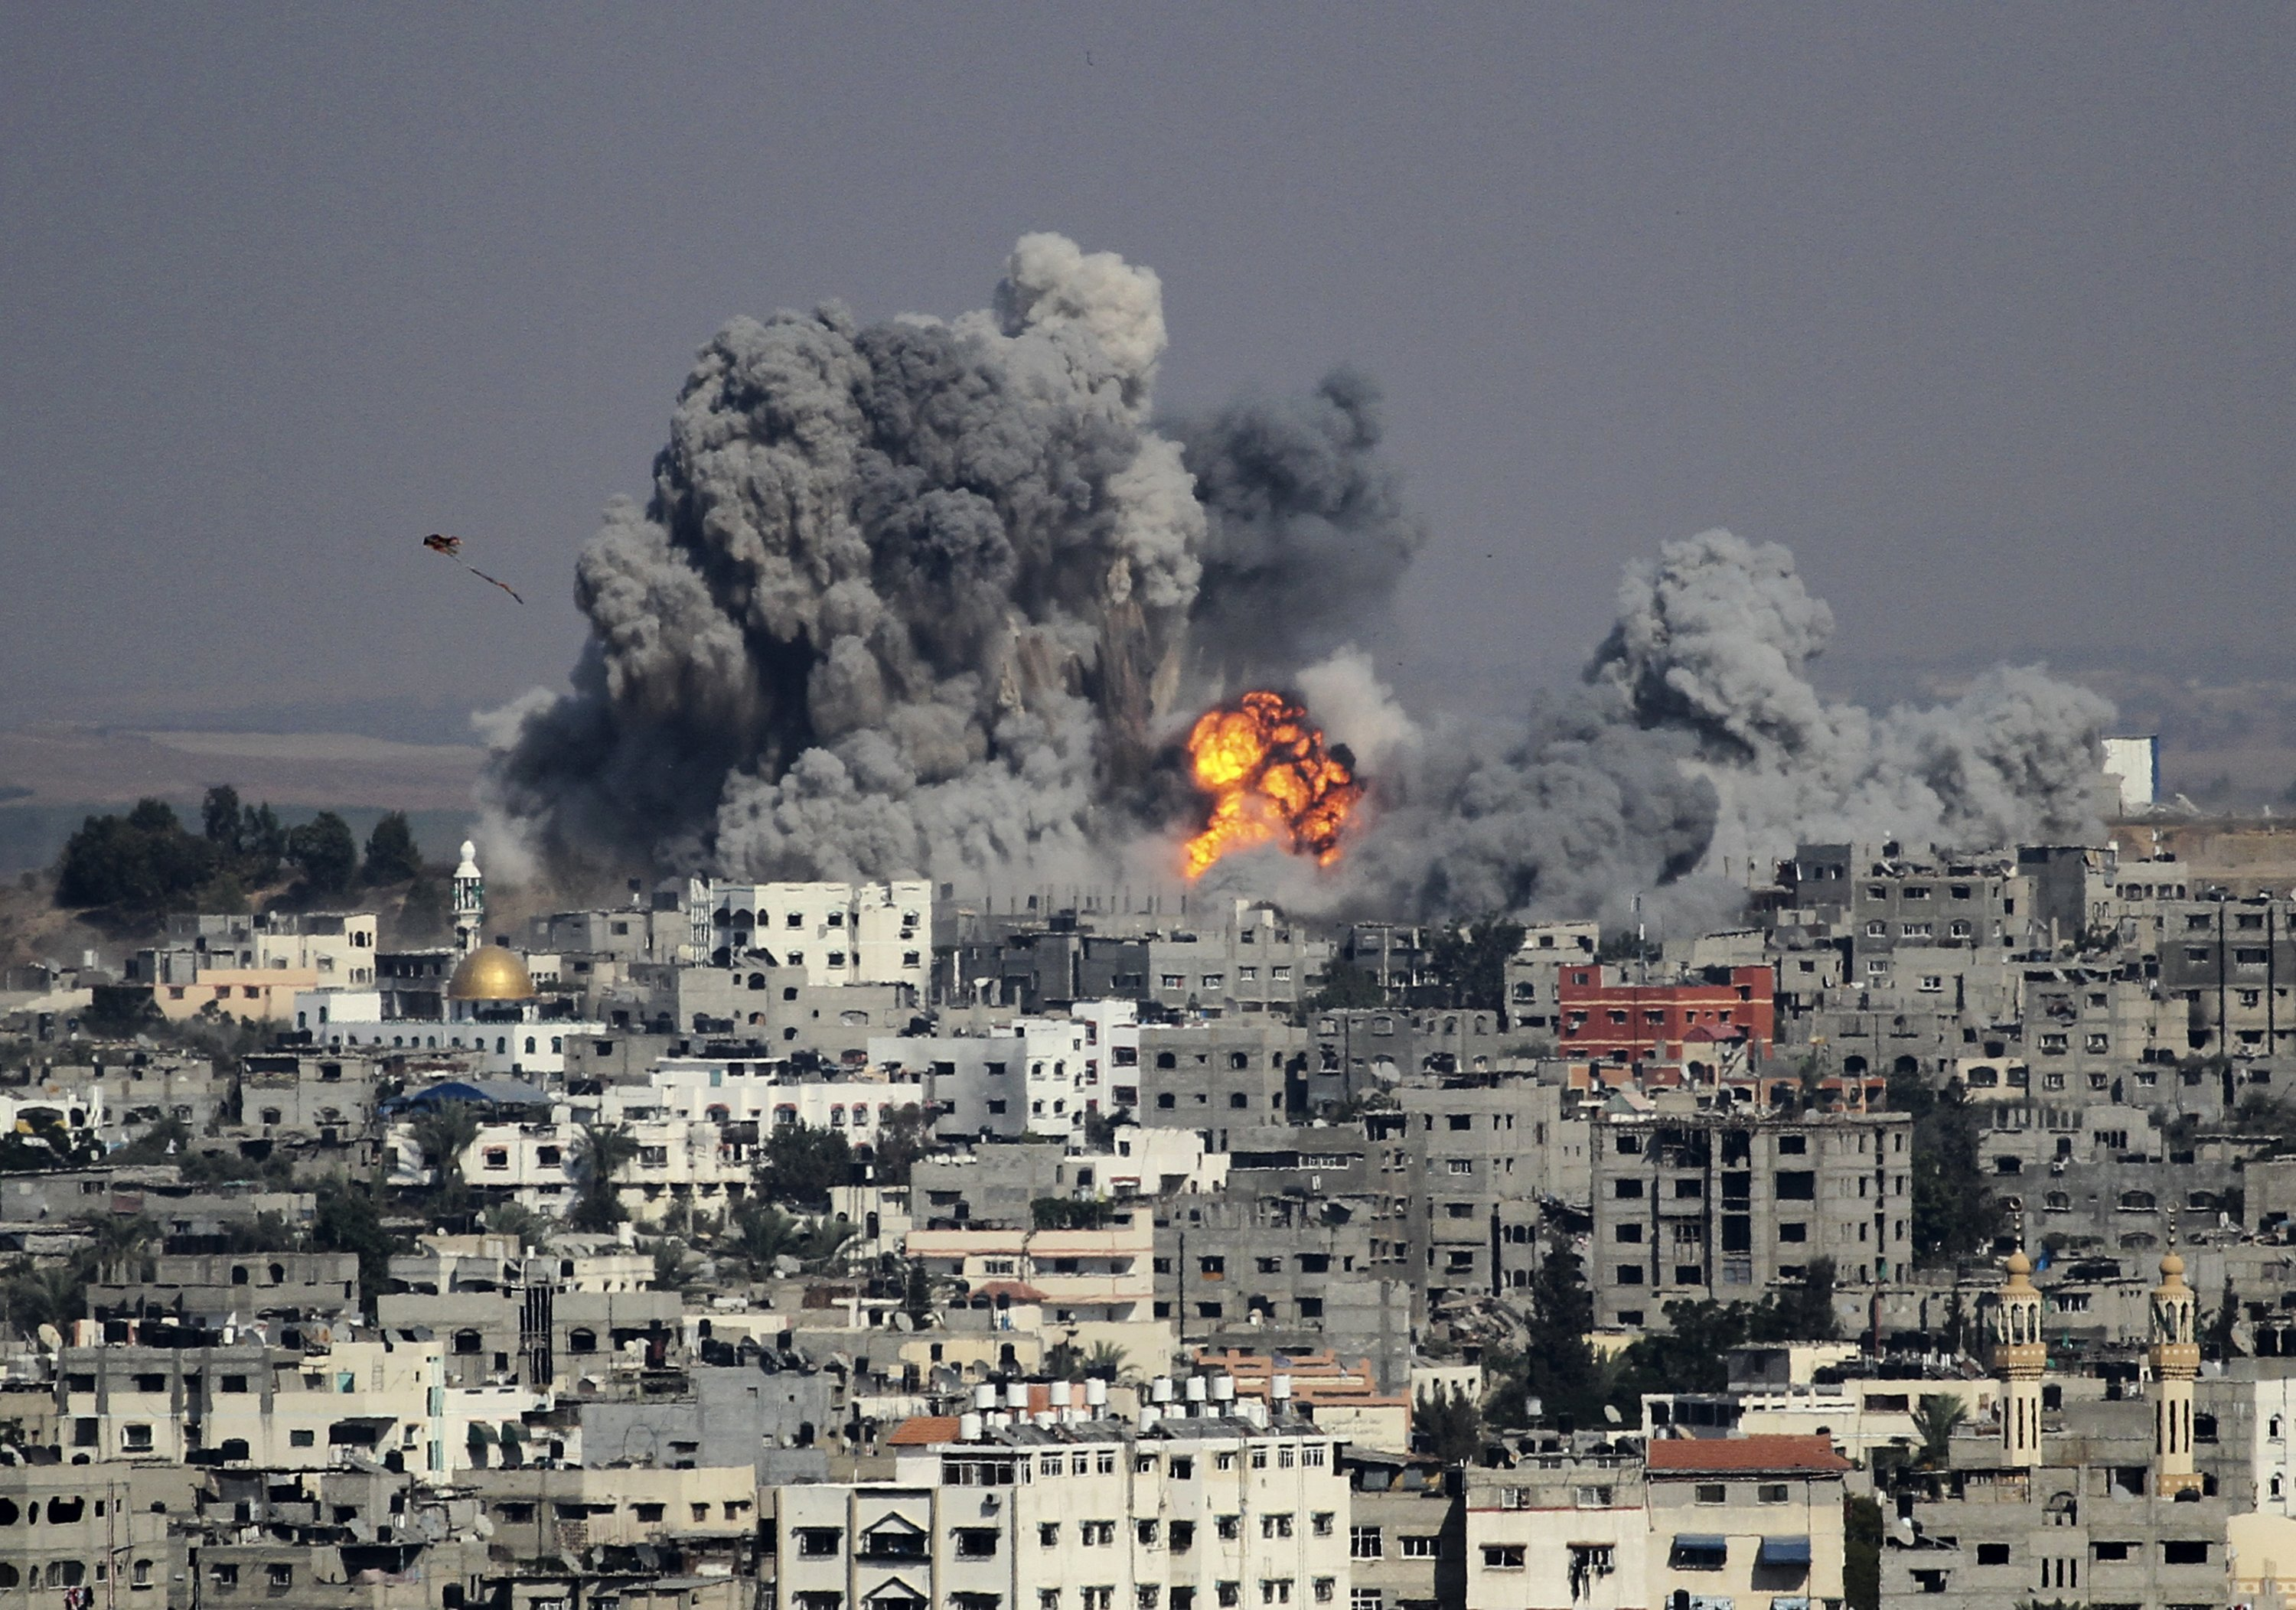 Smoke rises after a deadly Israeli attack in the east of Gaza City, Palestine, July 29, 2014. (Photo by Getty Images)